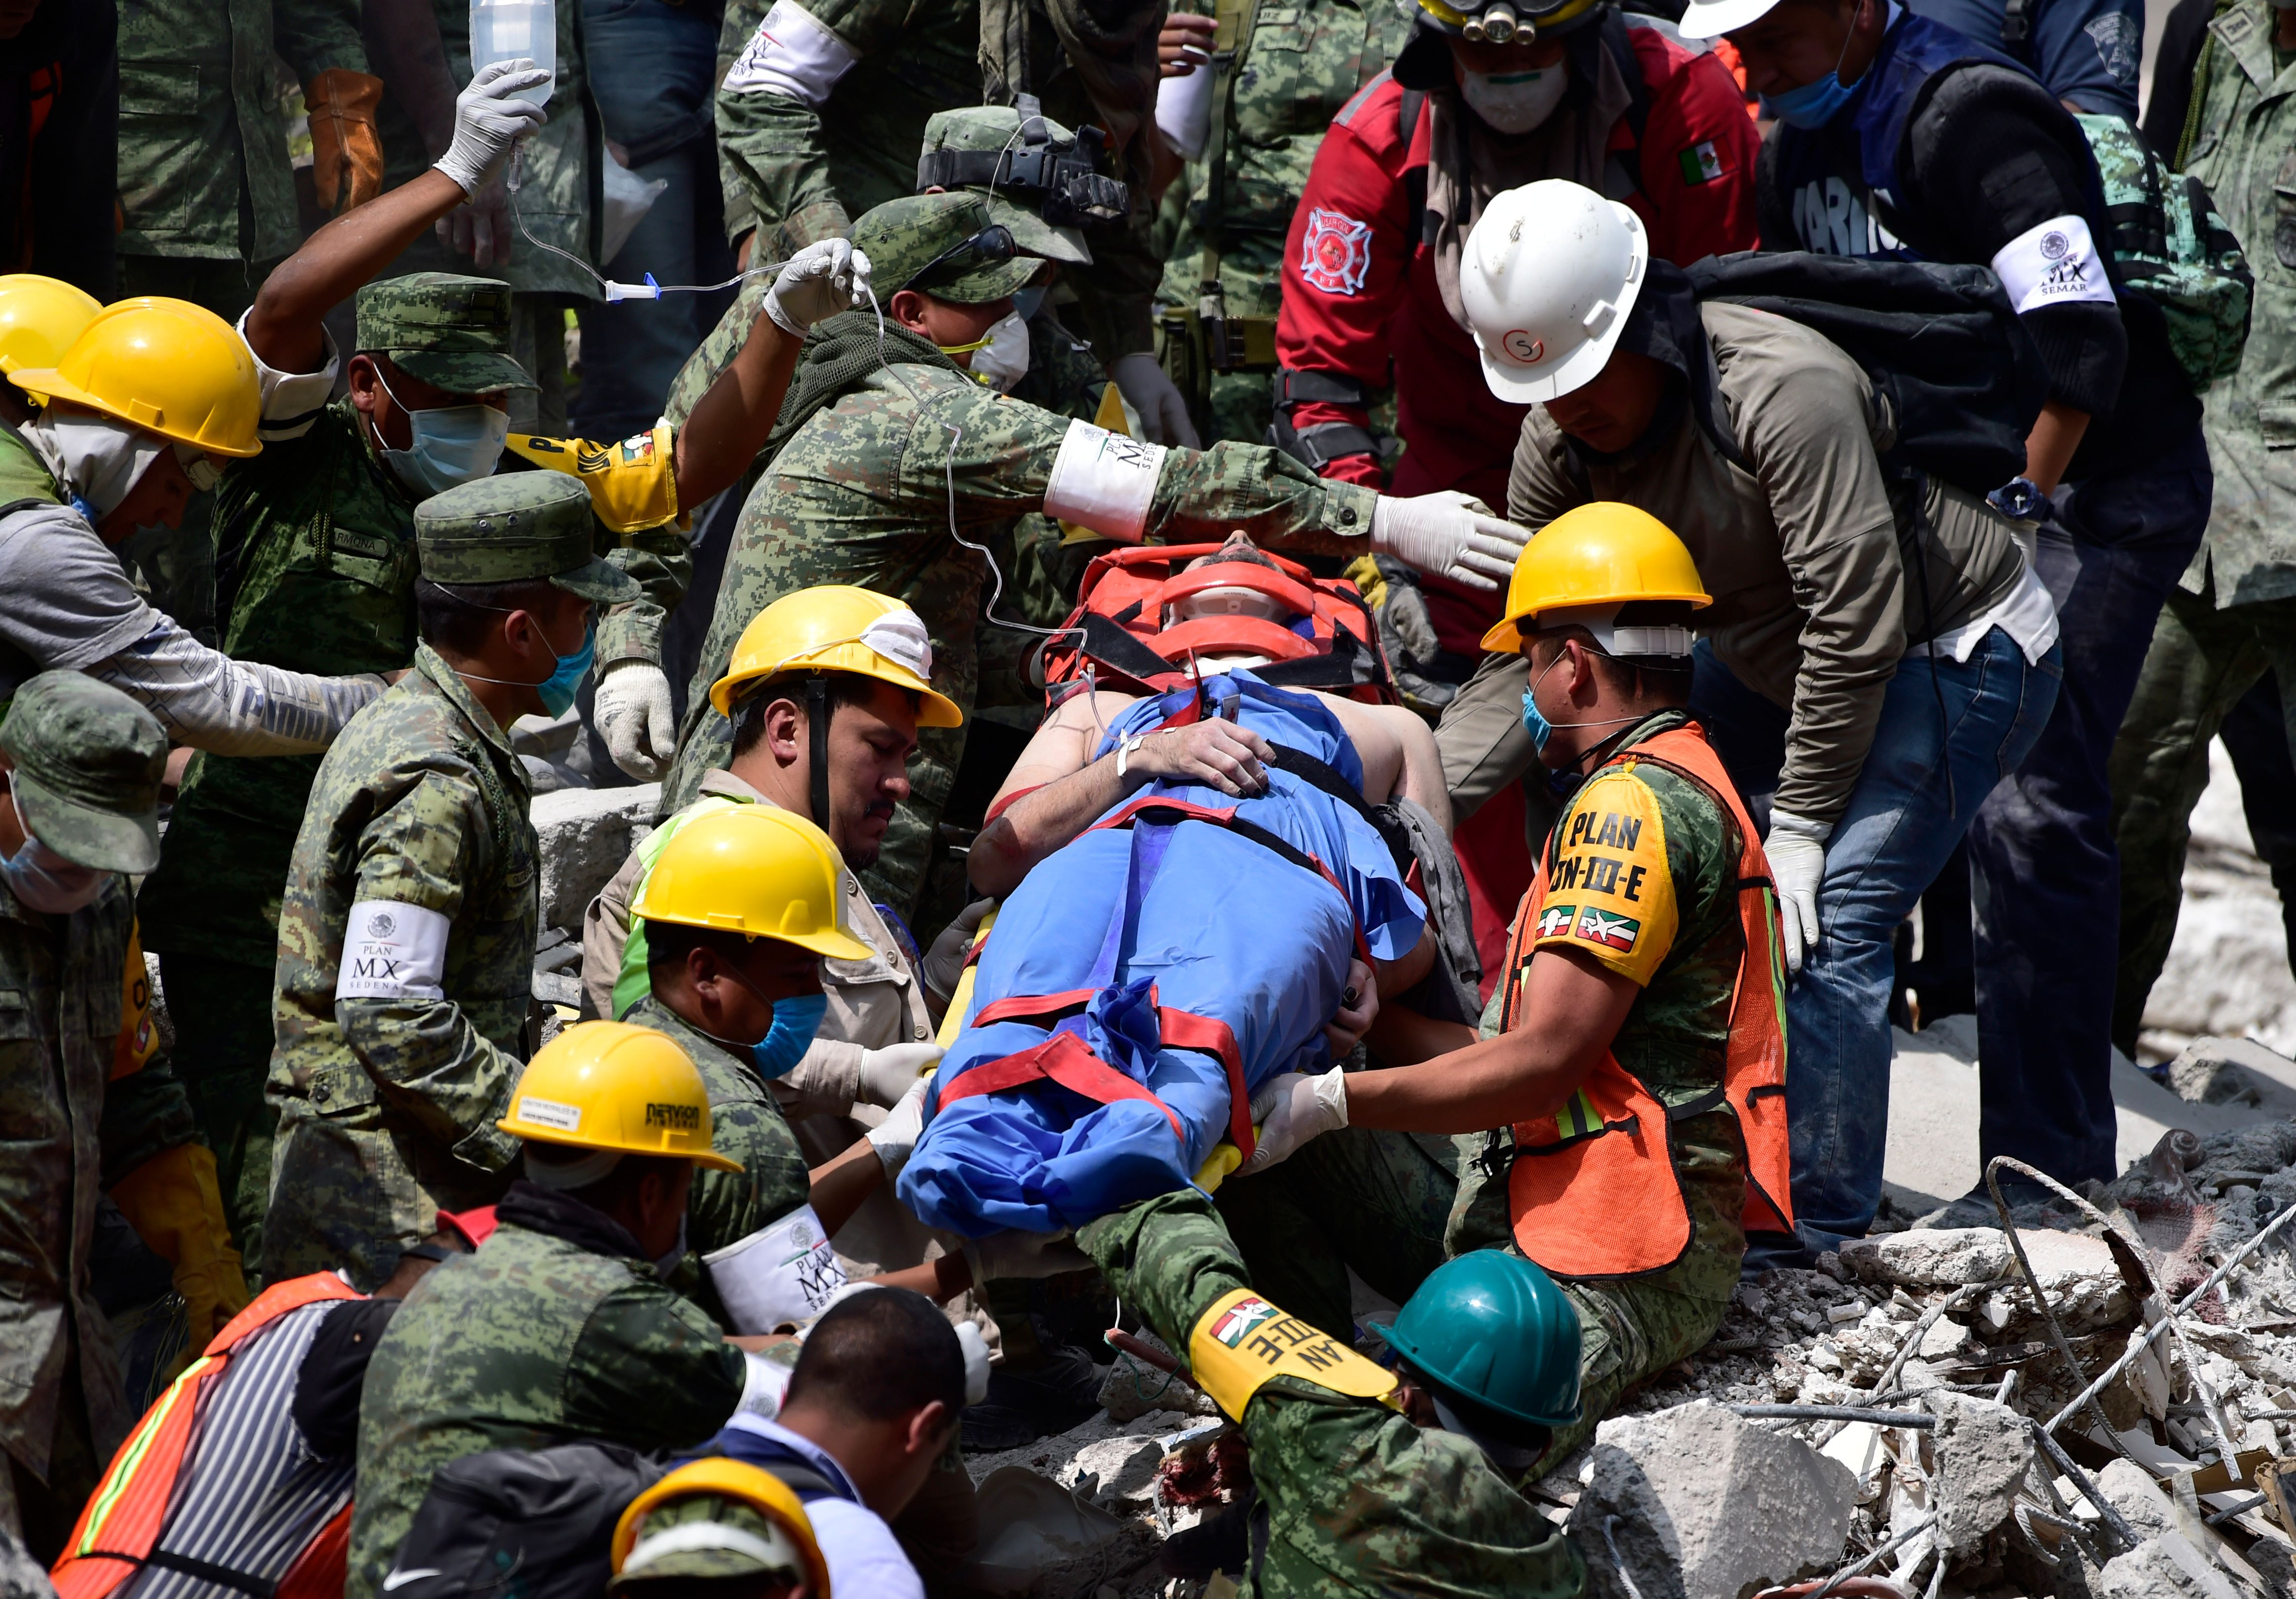 A survivor is pulled out of the rubble from a flattened building in Mexico City on September 20, 2017 as the search for survivors continues a day after a strong quake hit central Mexico. A powerful 7.1 earthquake shook Mexico City on Tuesday, causing panic among the megalopolis' 20 million inhabitants on the 32nd anniversary of a devastating 1985 quake. / AFP PHOTO / Pedro PARDO (Photo credit should read PEDRO PARDO/AFP/Getty Images)